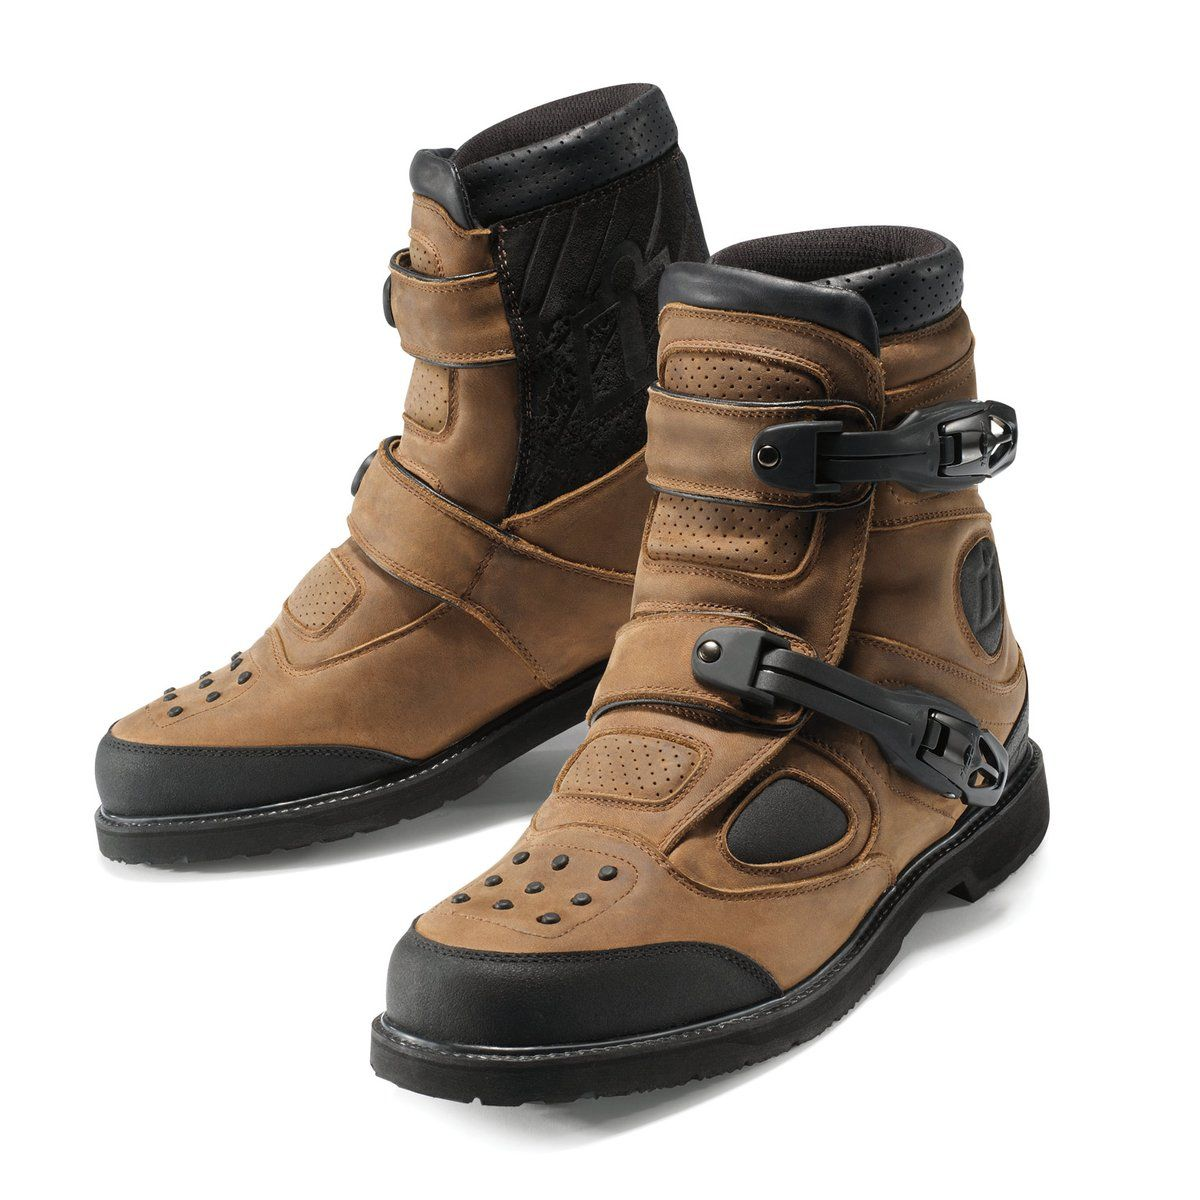 450a465f028 Icon Patrol 2 Boots | Riding Gear | Motorcycle riding boots ...